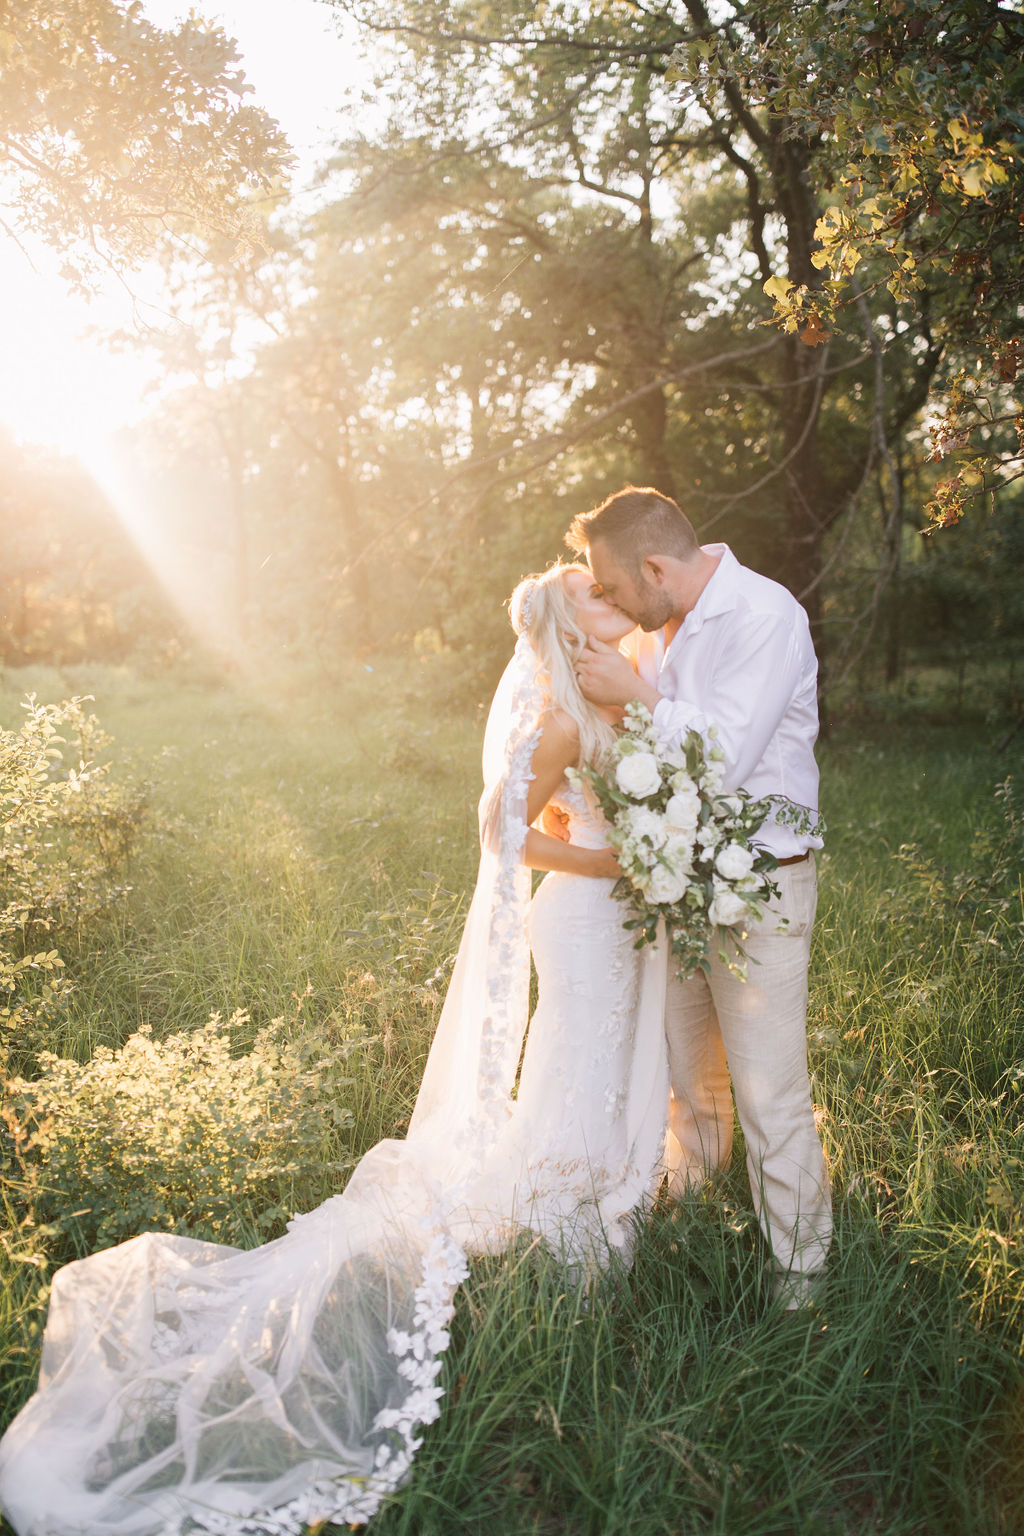 light-and-airy-dallas-fortworth-wedding-photography-bushel-peck9